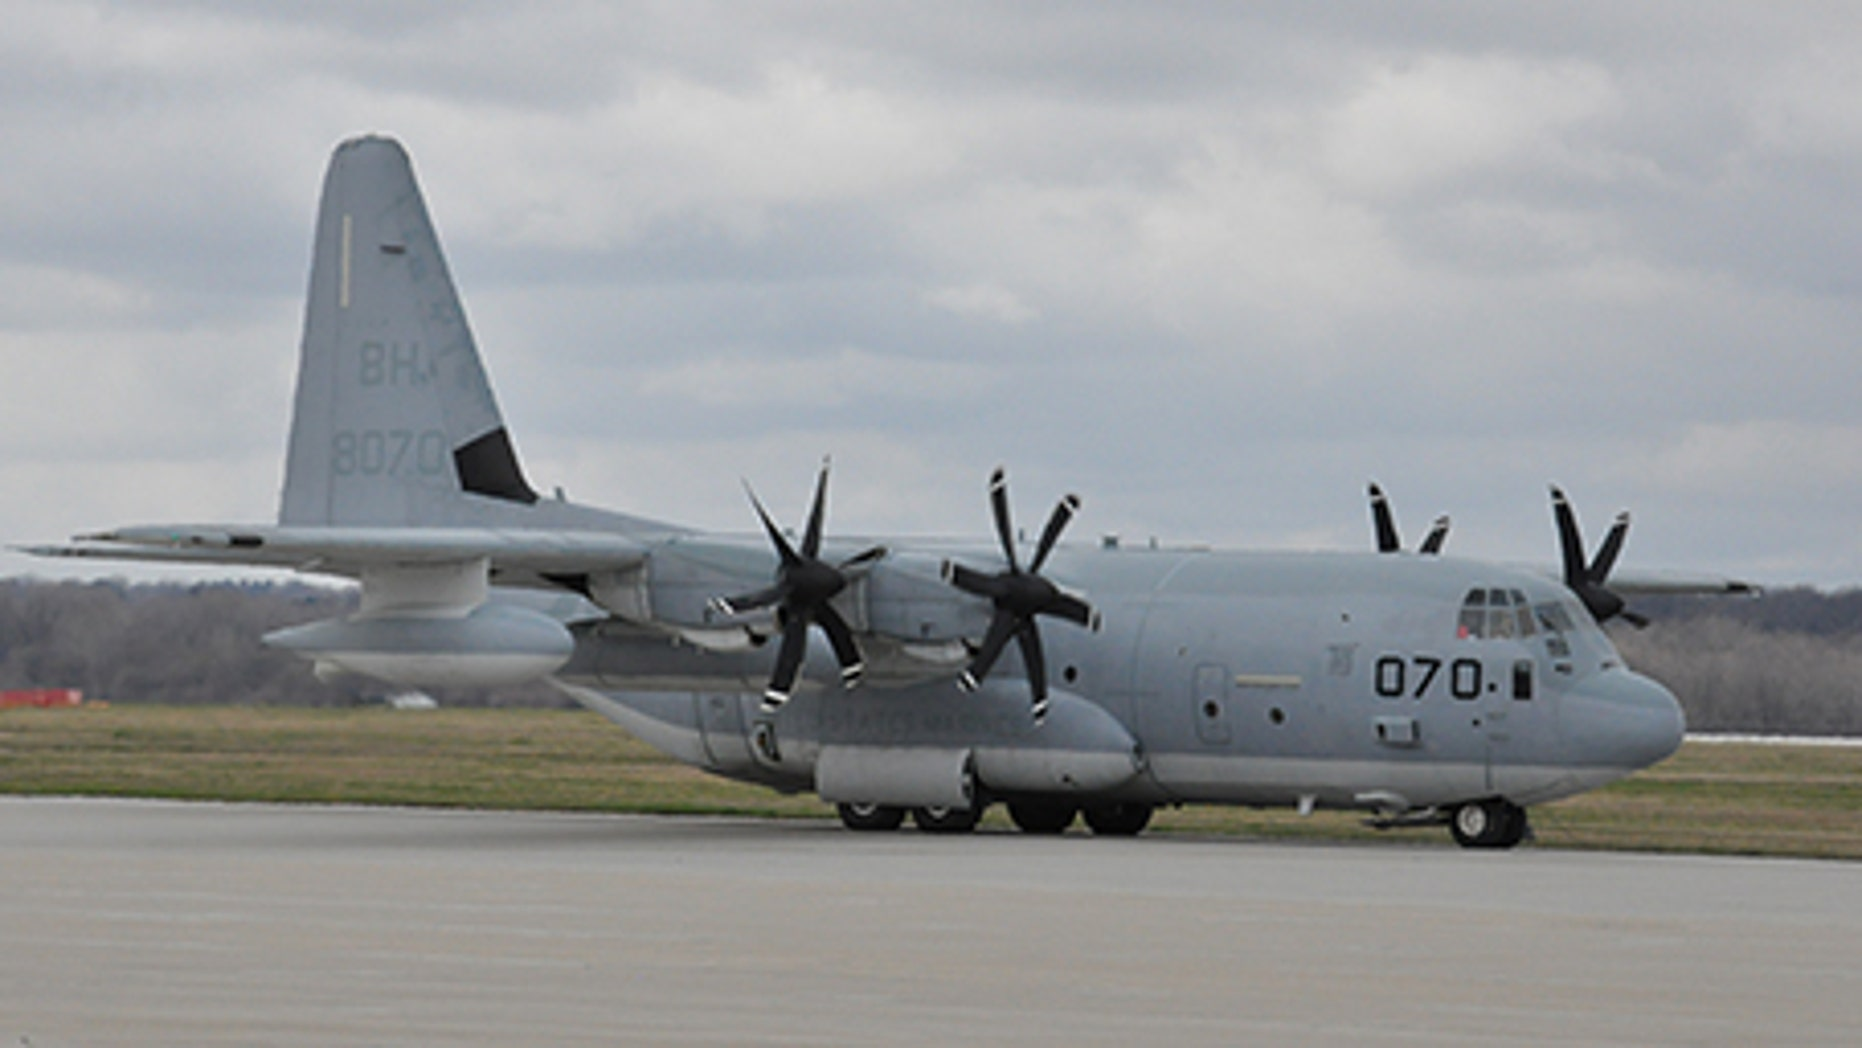 Search underway after 2 Marine aircraft crash off coast of Japan